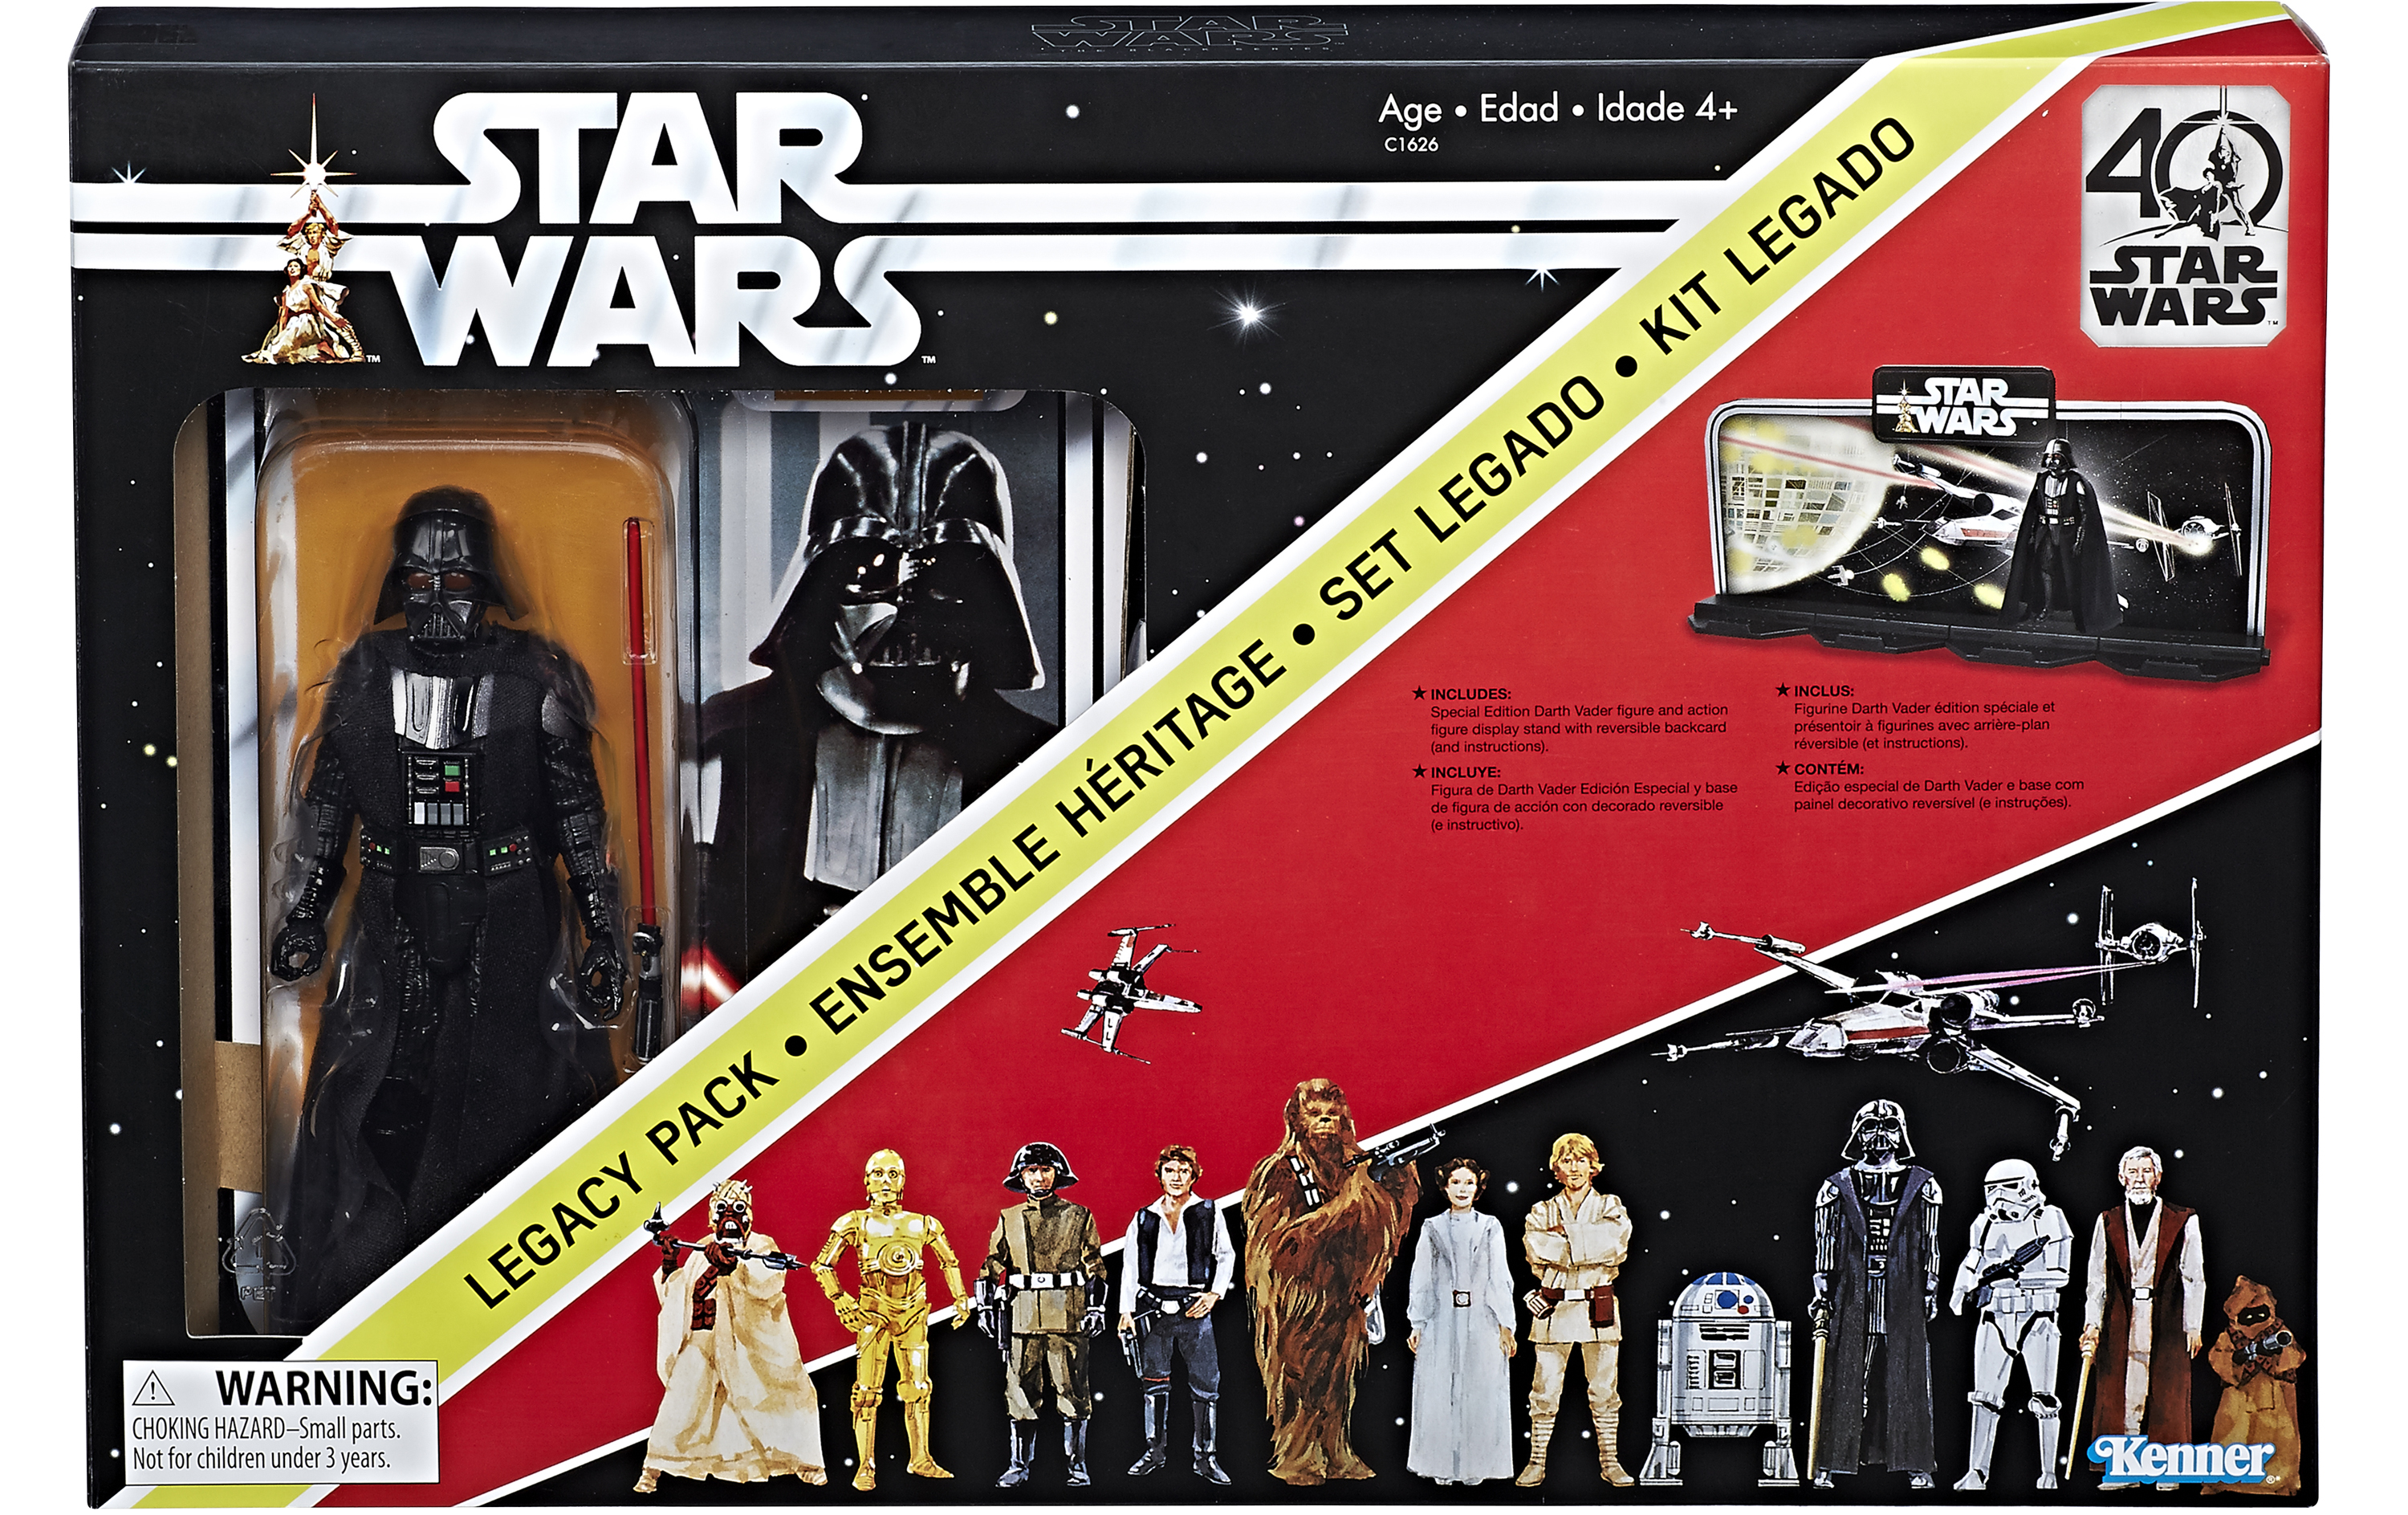 Hasbro's 'Star Wars' 40th Anniversary Toys Recreate Famed Kenner Early Bird Kit